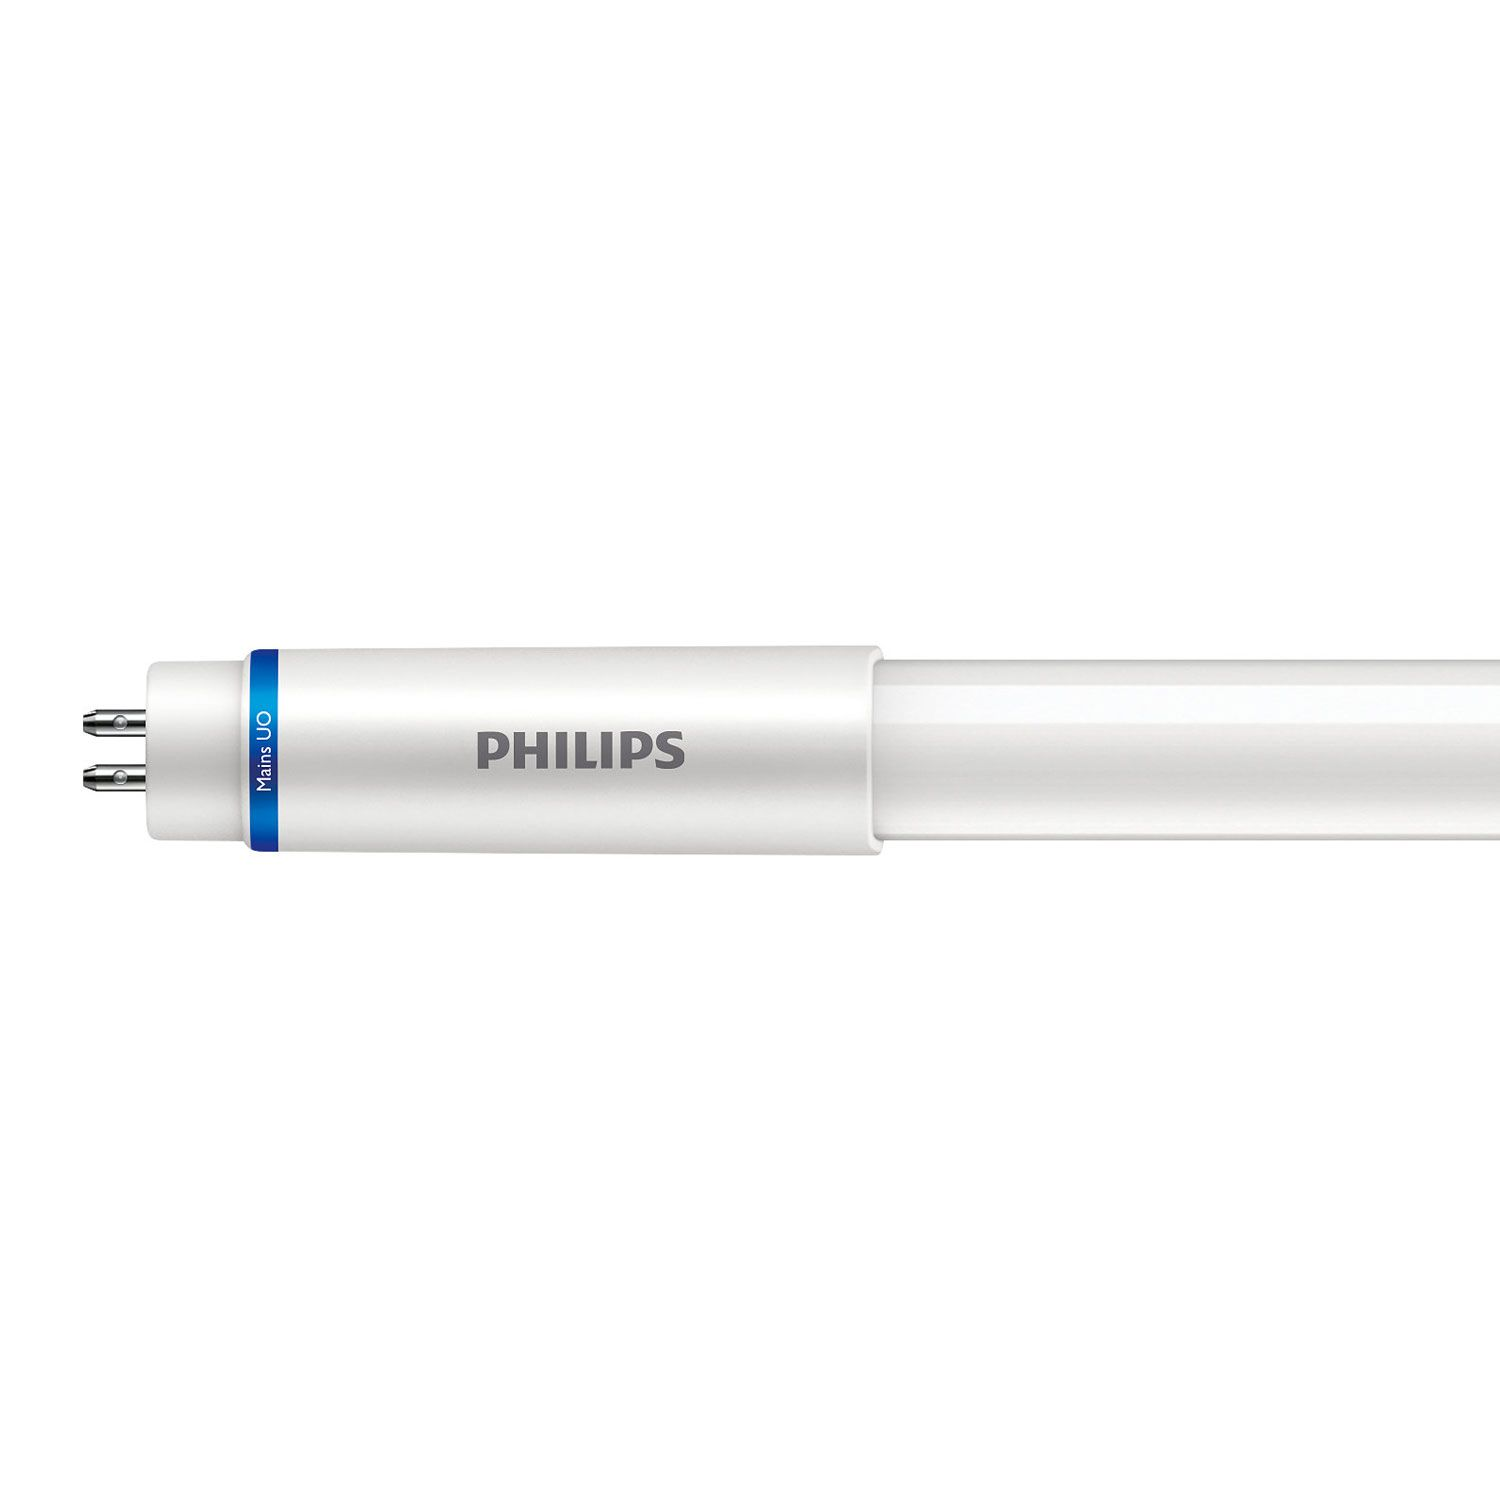 Philips LEDtube T5 UO 36W 865 150cm (MASTER)   Replacer for 80W